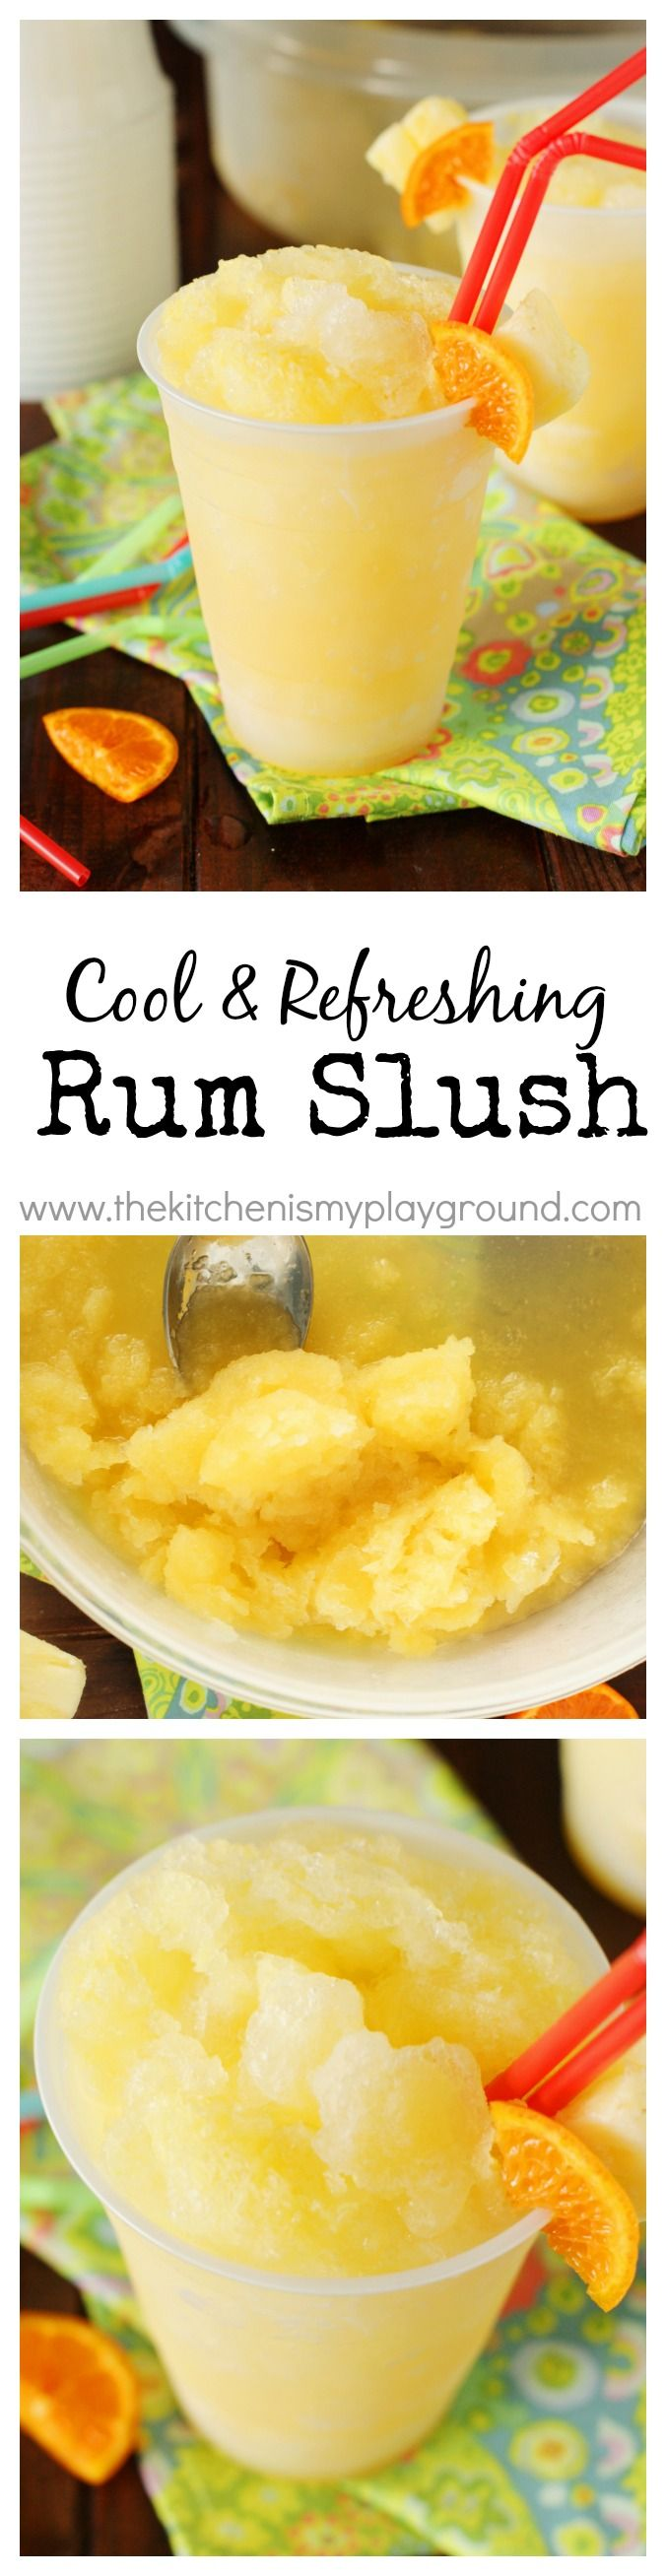 Rum Slush ~ With its refreshing citrus taste and super-cool slushiness, Rum Slush is perfect for sipping on those hot summer days.   www.thekitchenismyplayground.com